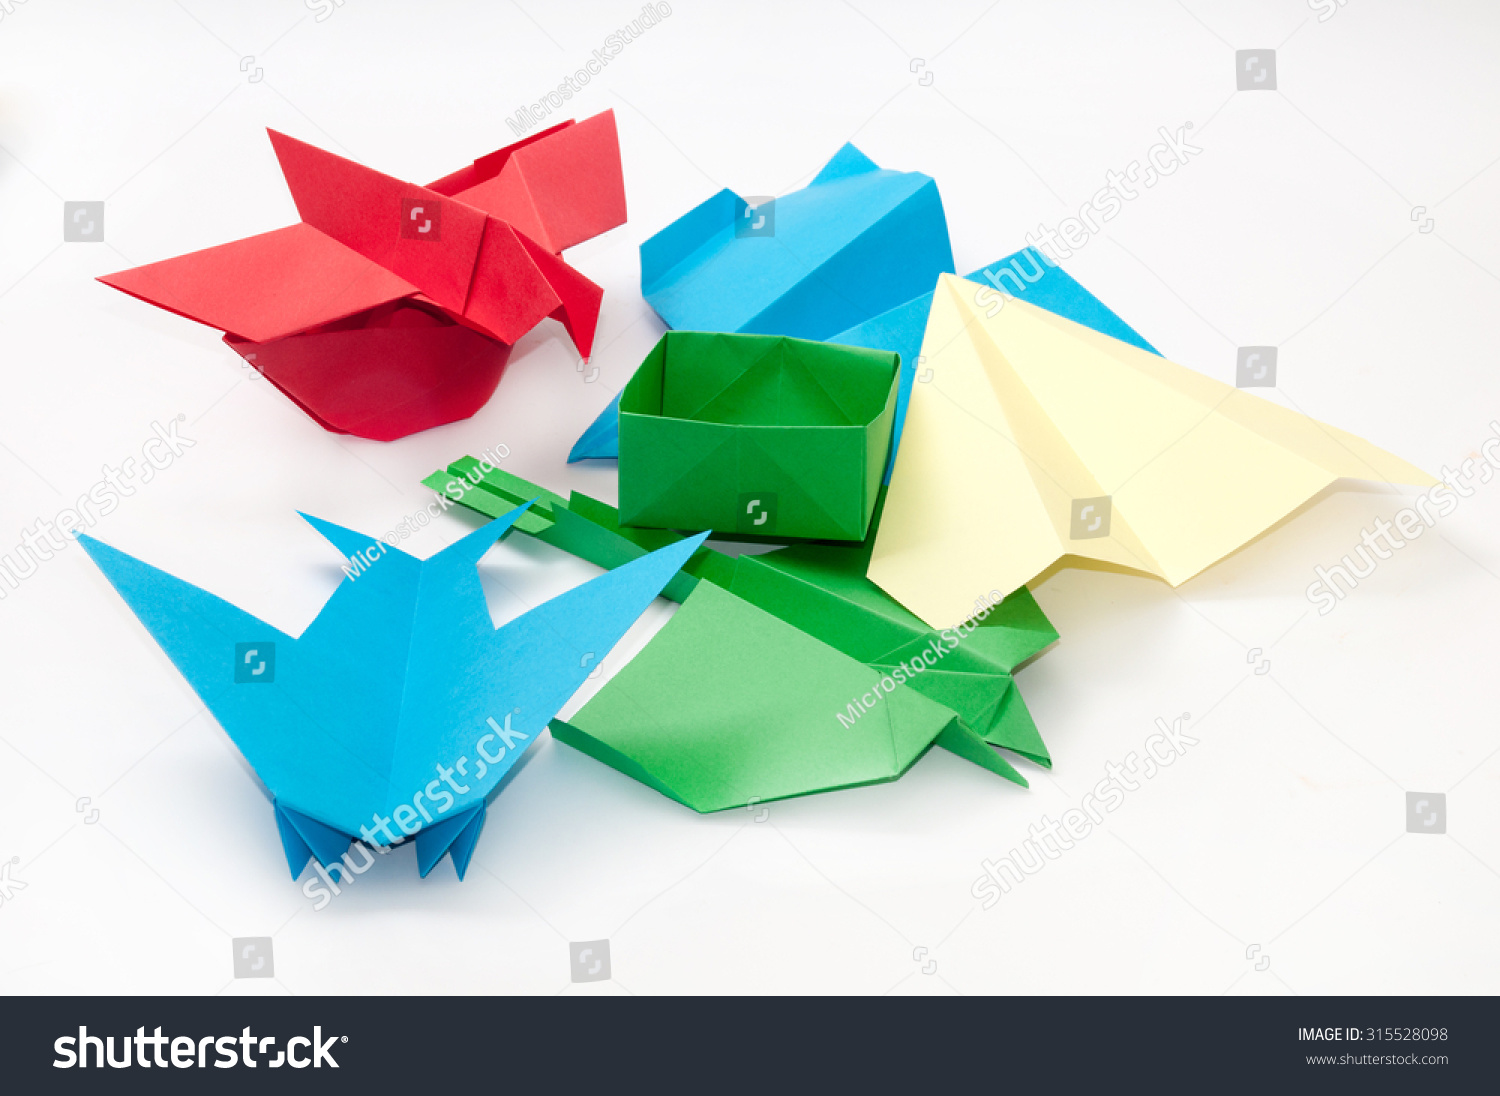 Pile bunch origami objects plane boat stock photo 315528098 pile bunch origami objects plane boat jeuxipadfo Choice Image